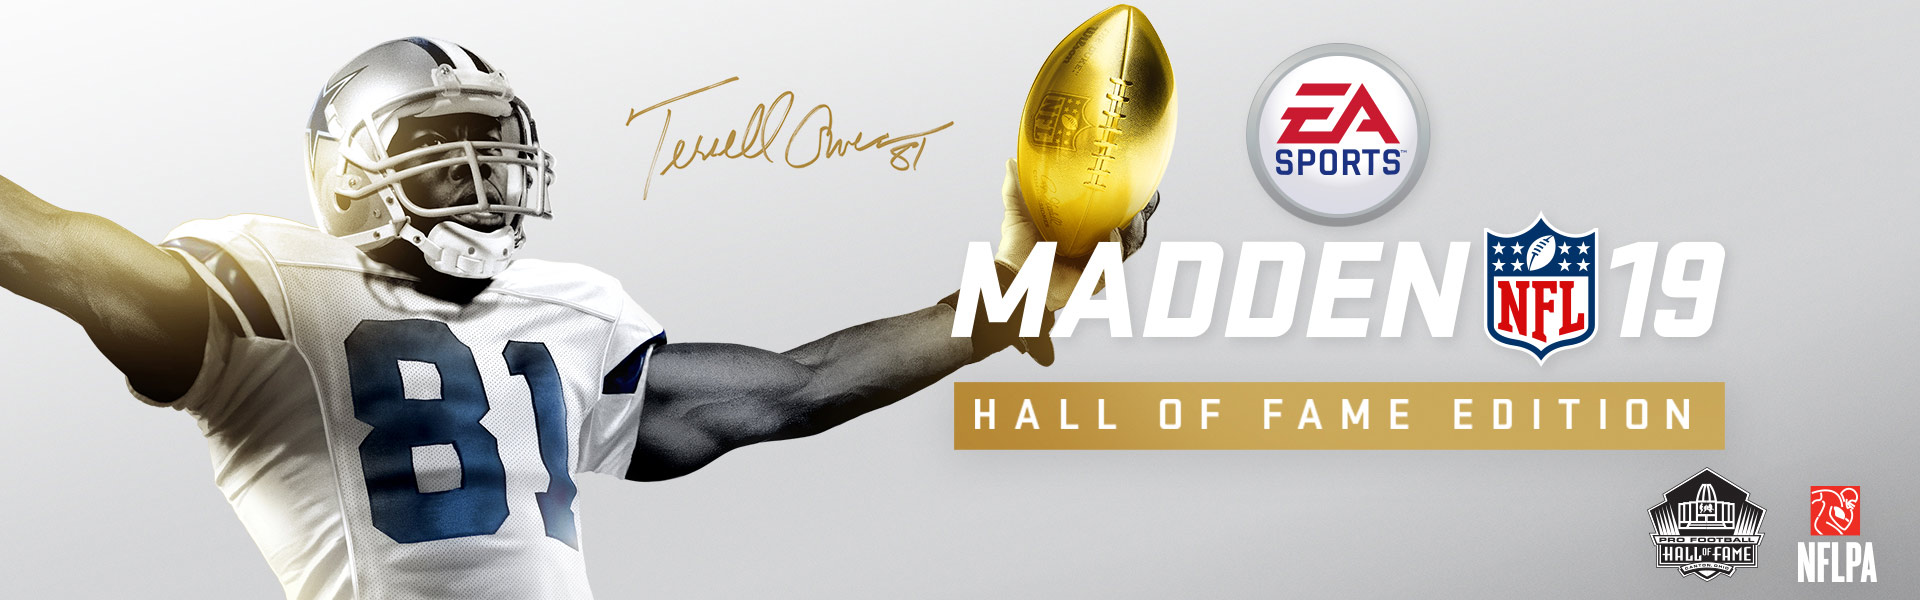 EA Sports, Madden NFL 19 – Hall of Fame Edition, Terrell Owens in Dallas-Trikot mit goldenem Football